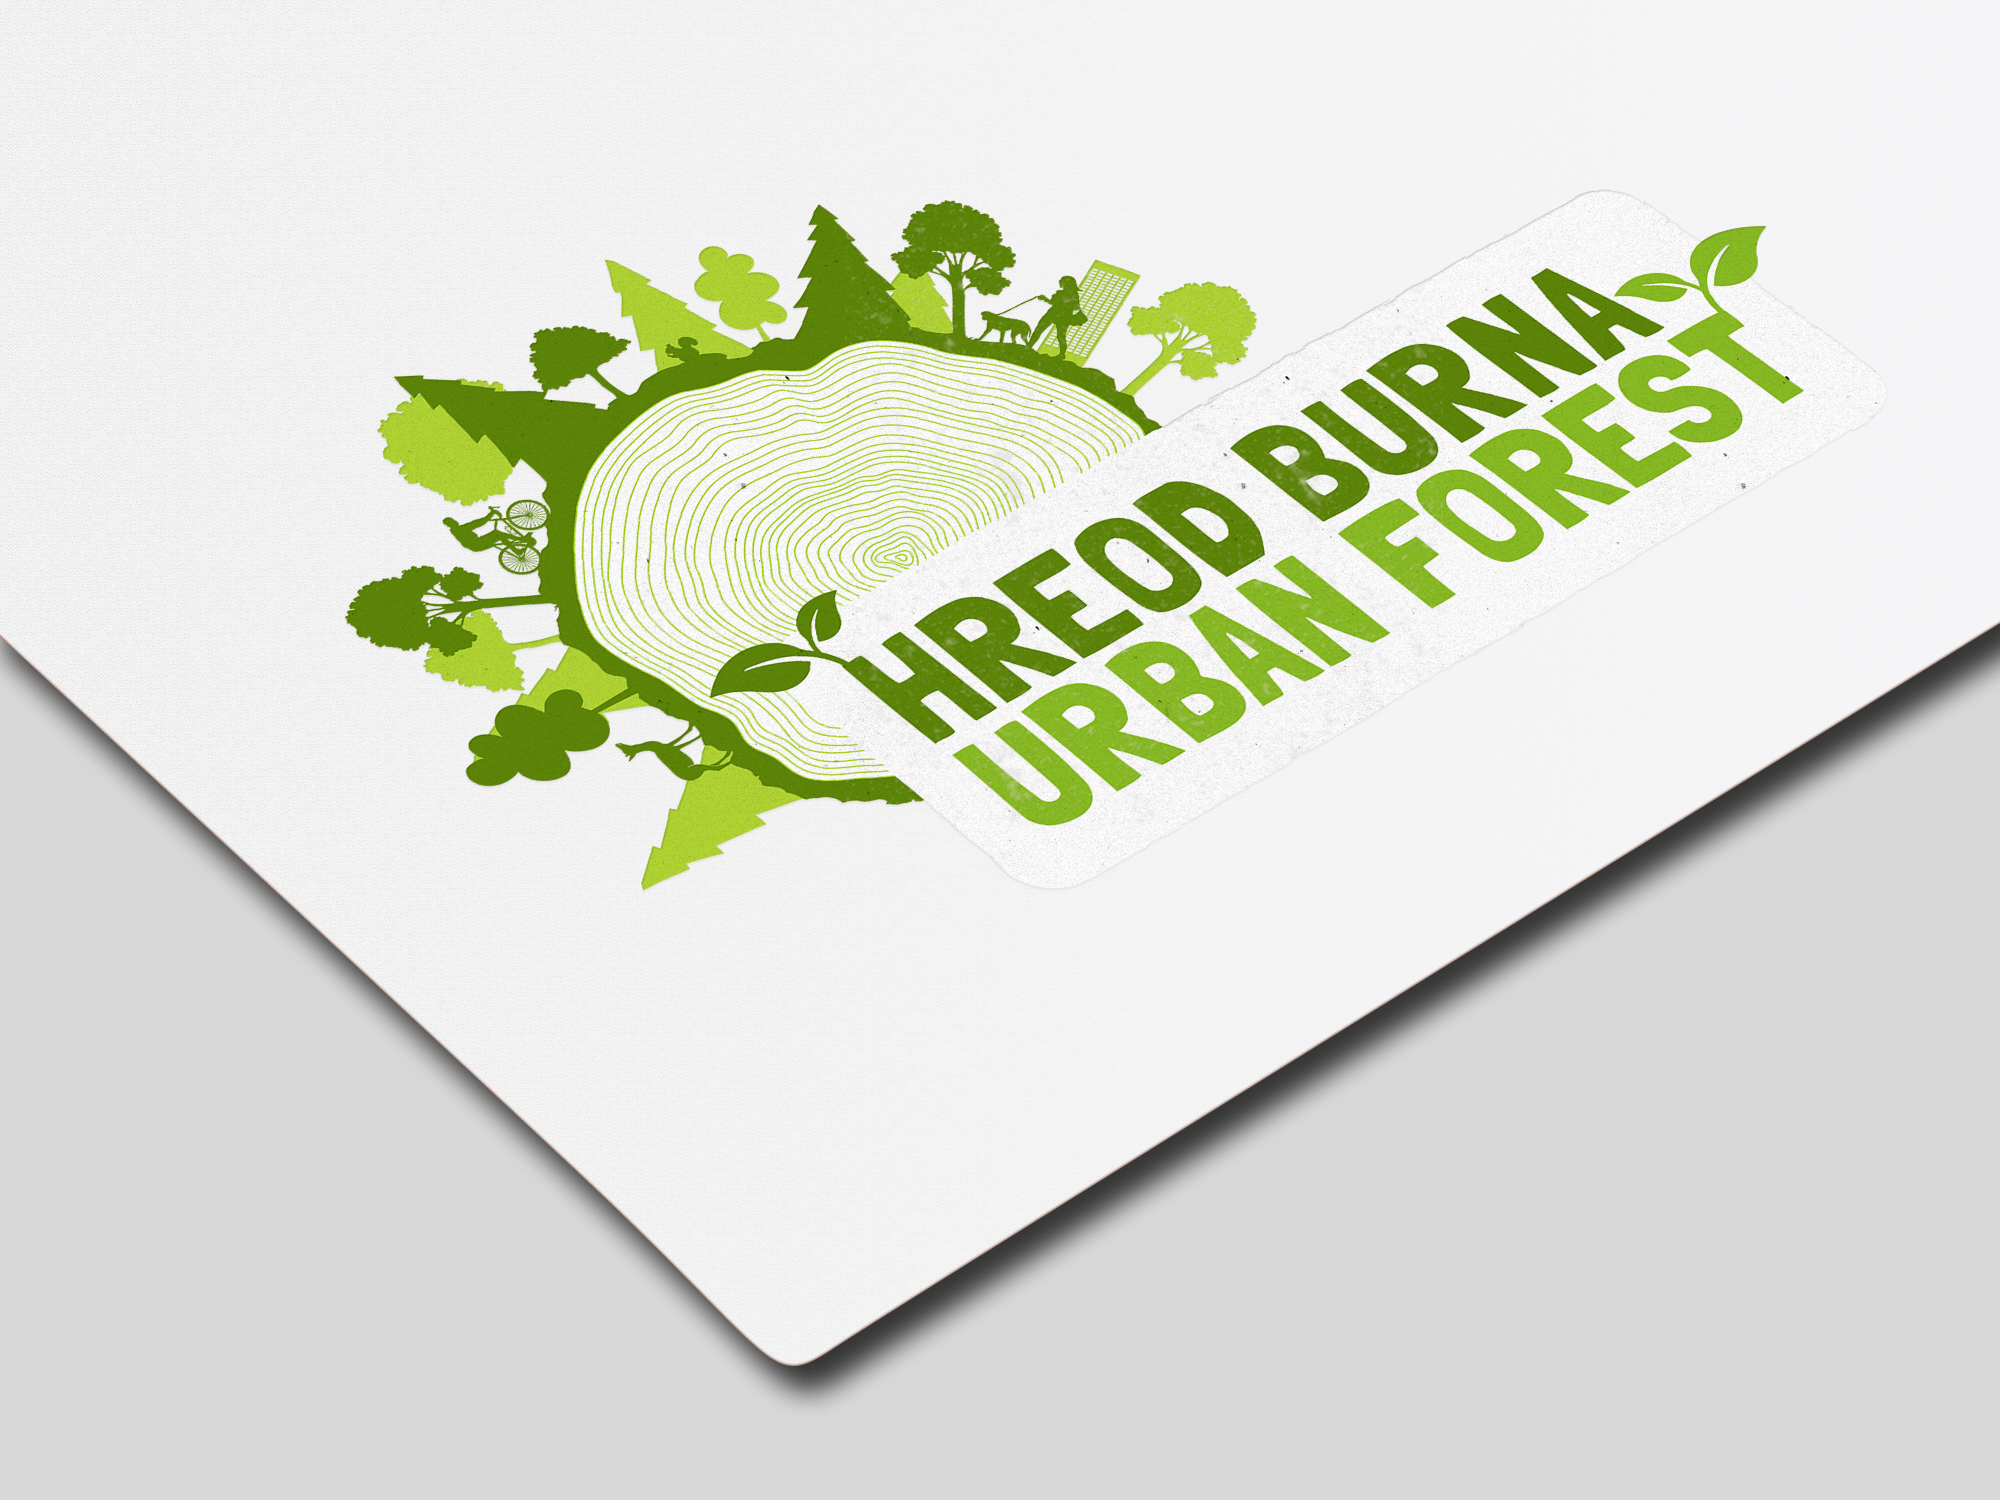 Hreod Burna Urban Forest Illustrated Graphic